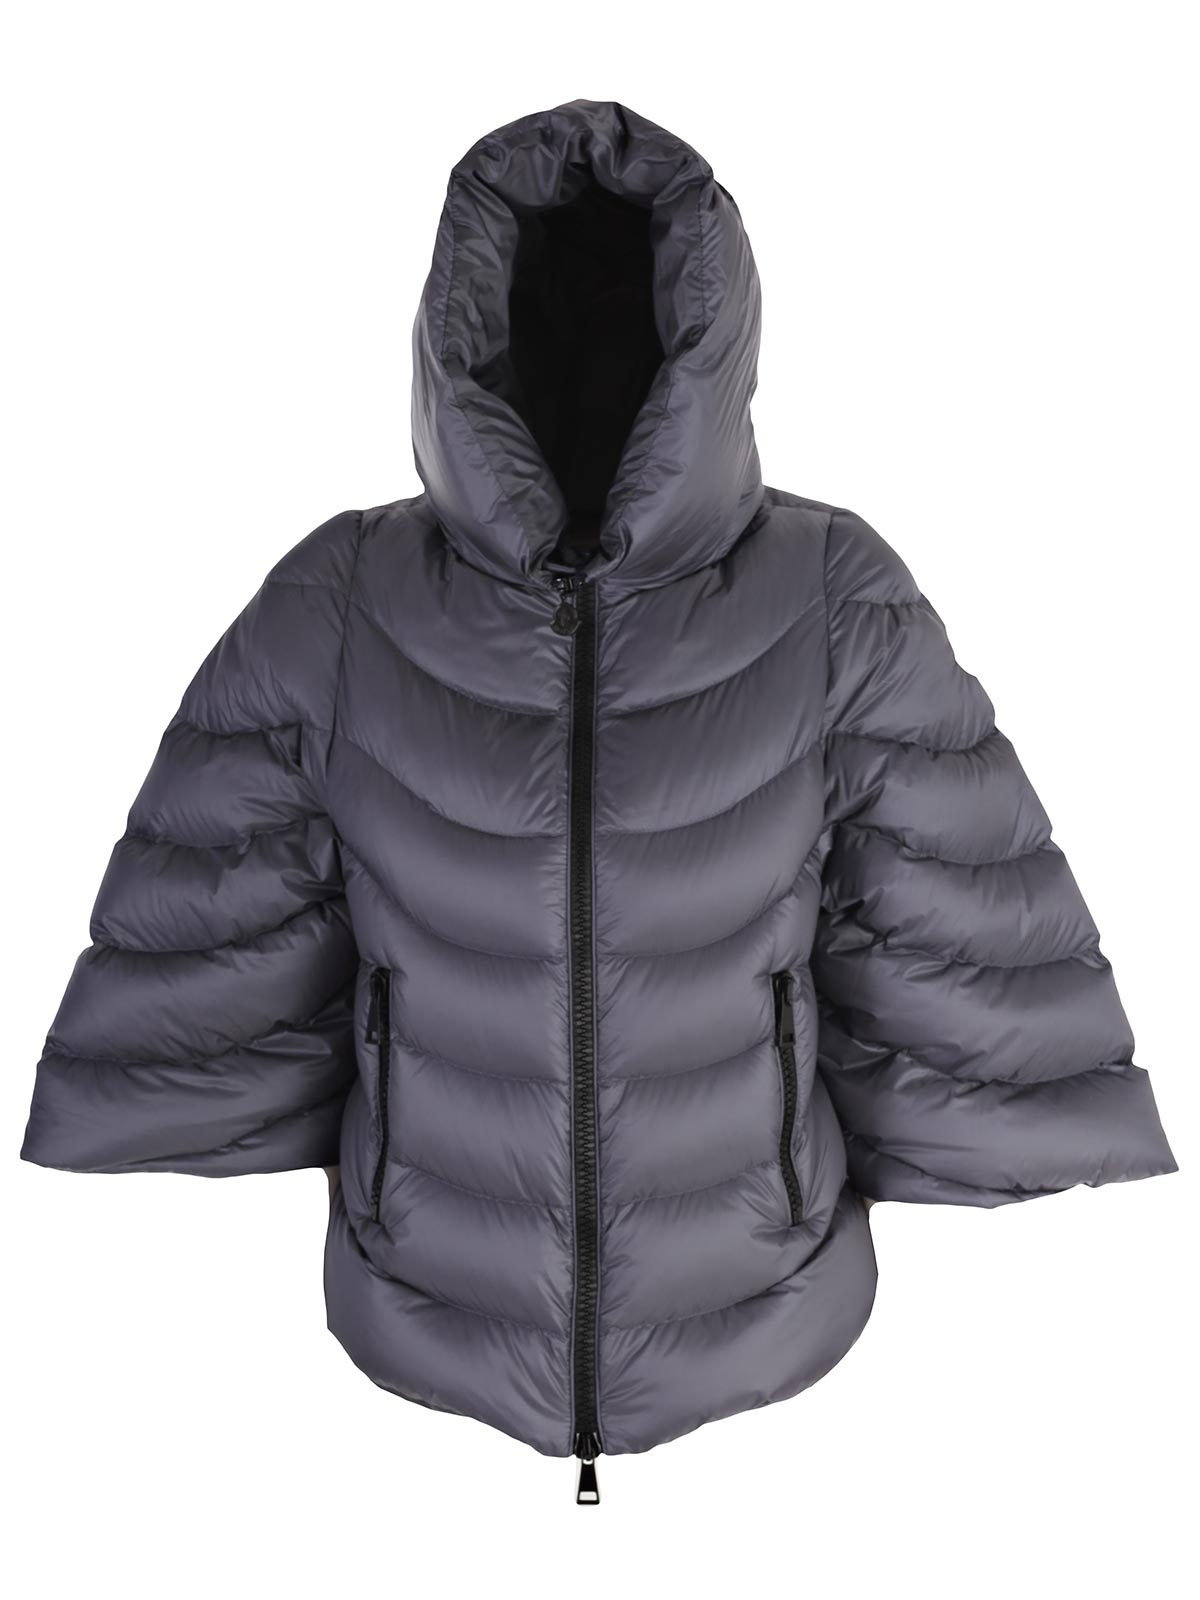 check out 31aa3 a4059 MONCLER GIUBBOTTO